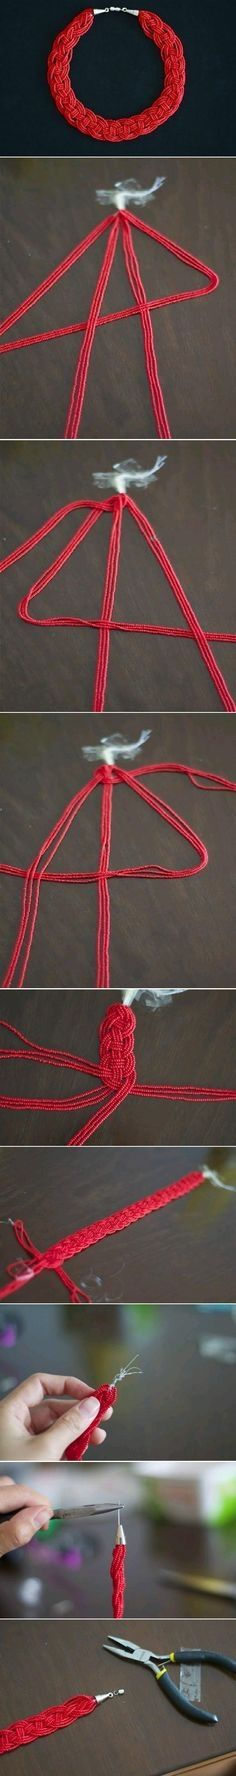 DIY Pretty Necklace diy crafts craft ideas easy crafts diy ideas crafty easy diy diy jewelry craft necklace diy necklace jewelry diy